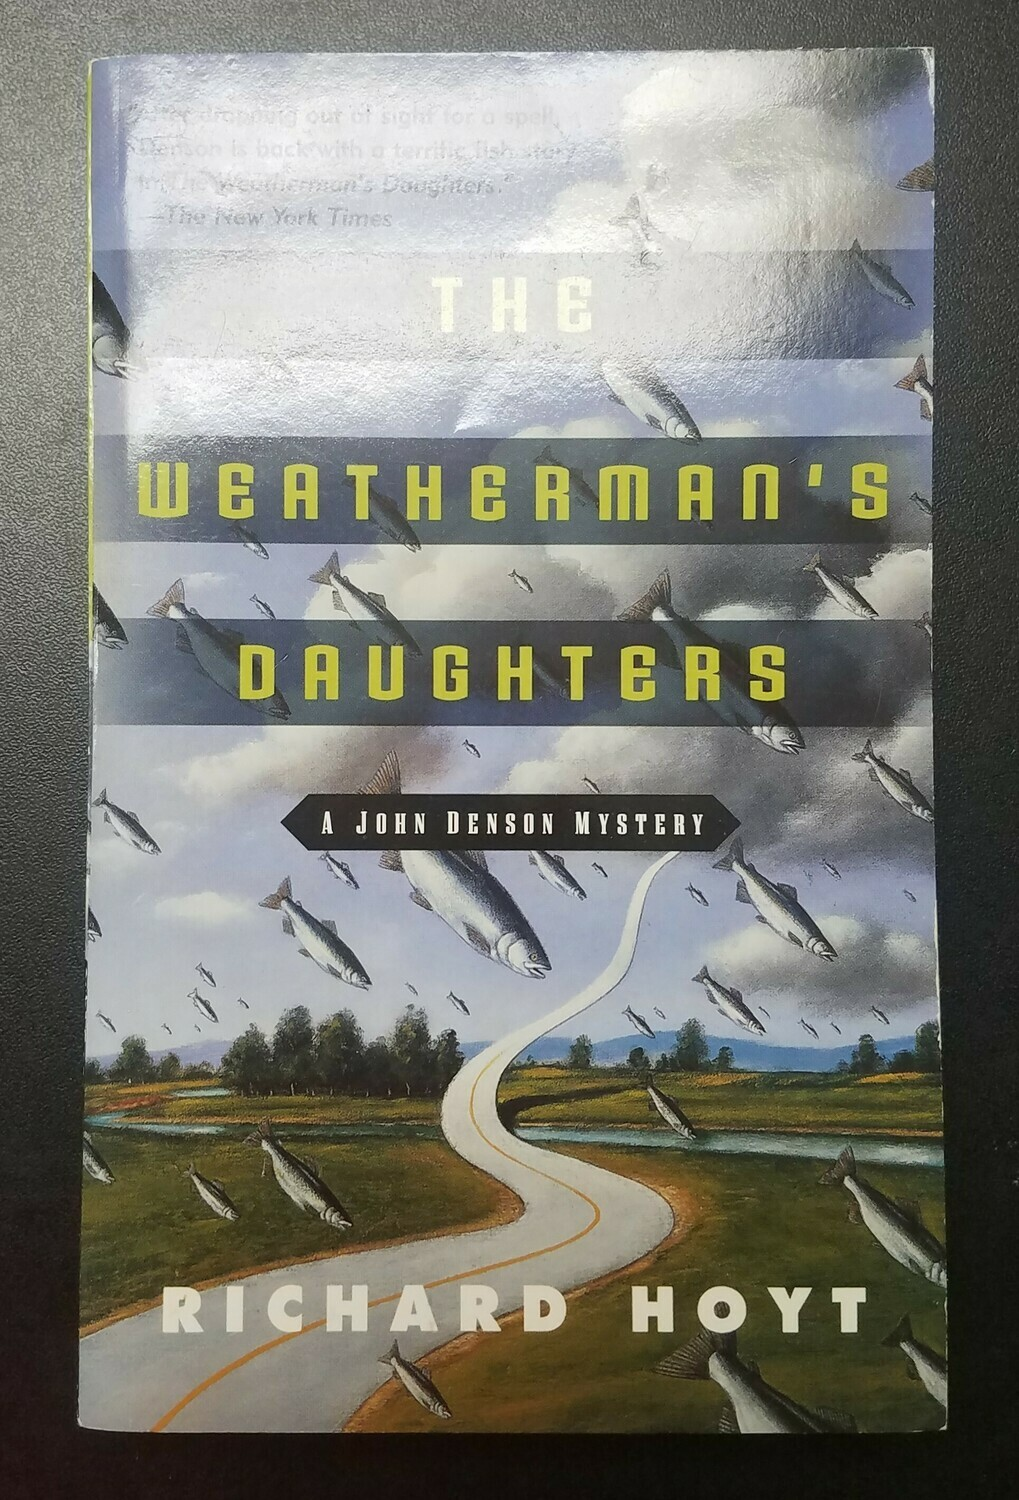 The Weatherman's Daughters by Richard Hoyt